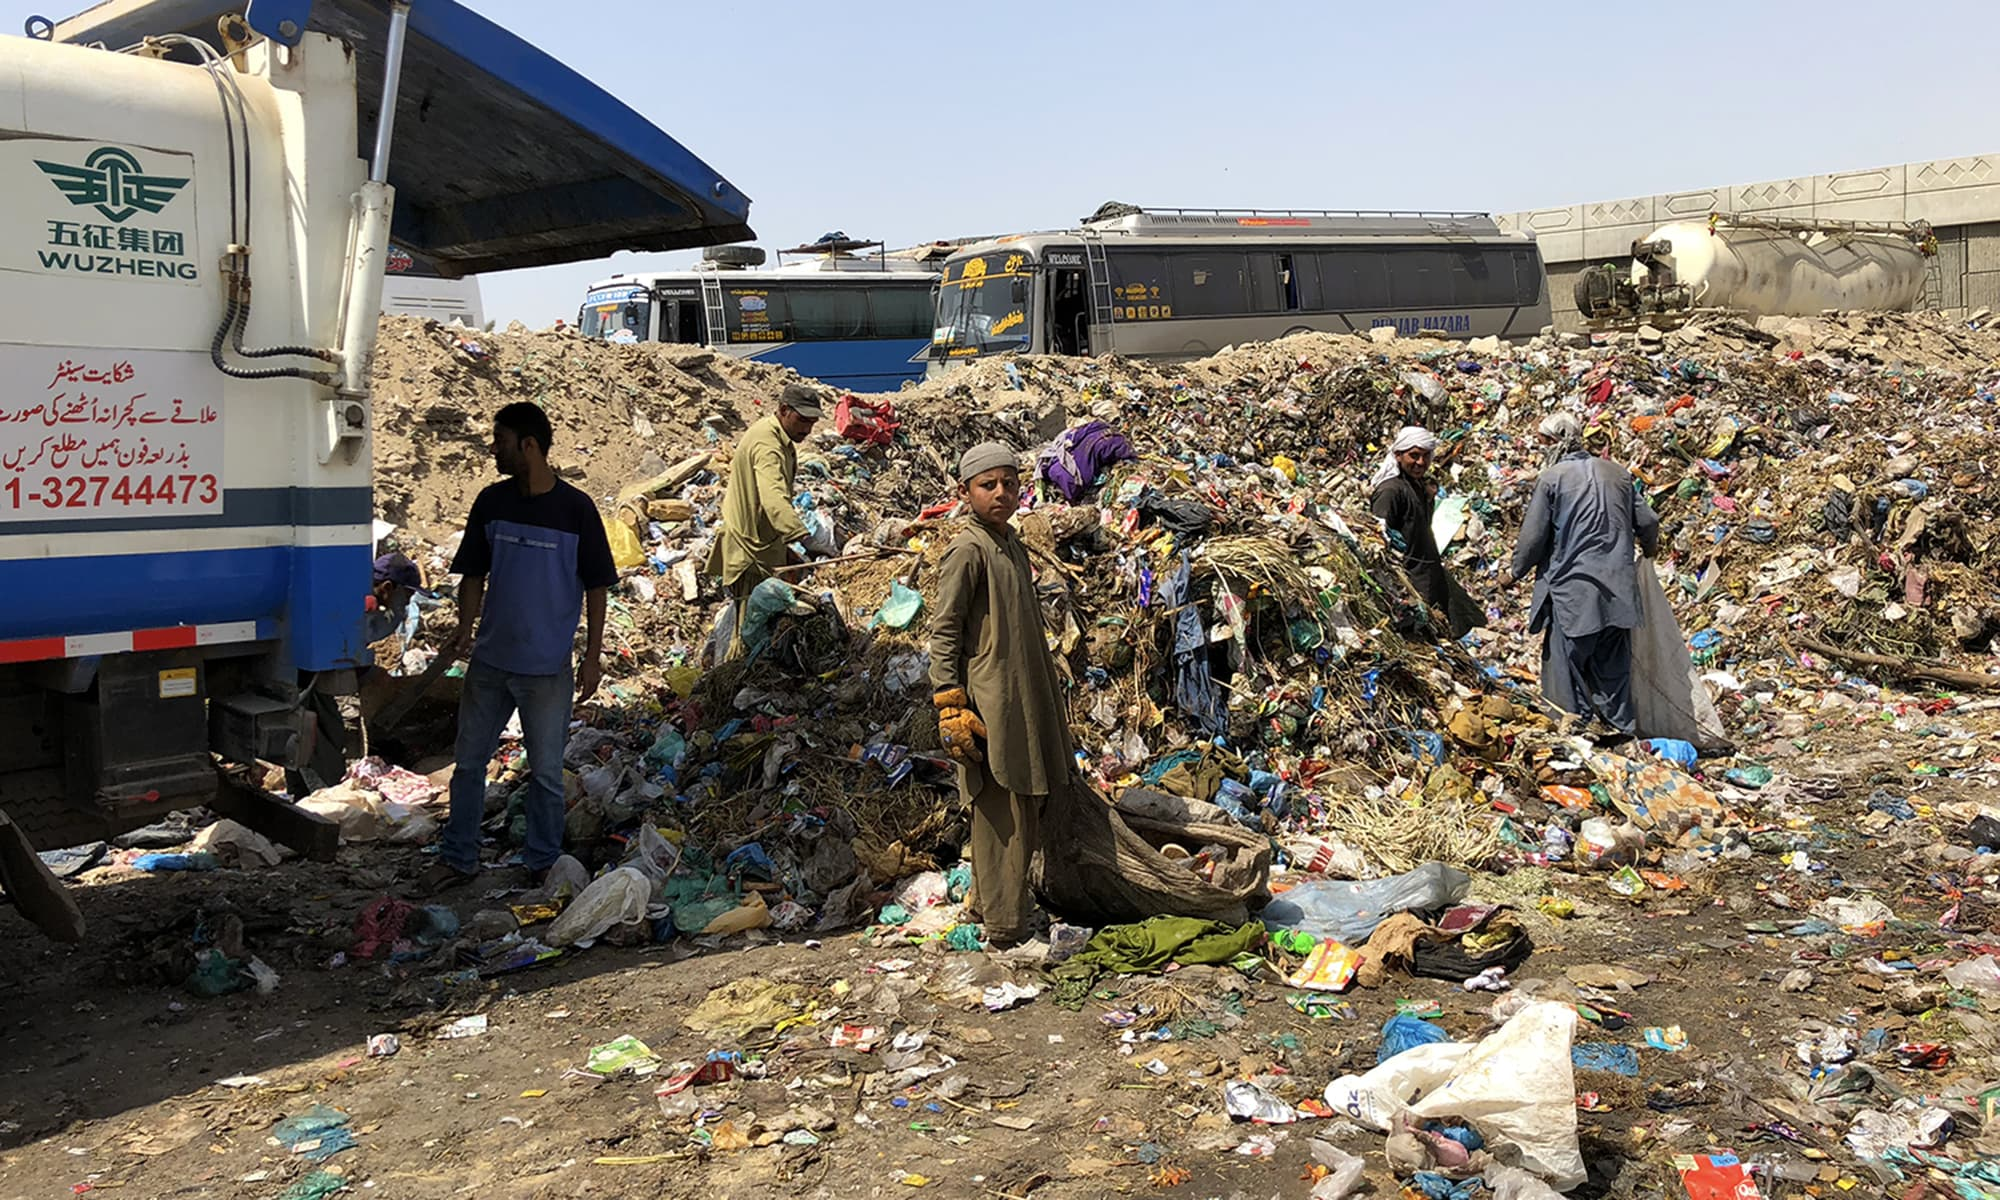 Afghan children sift through the garbage. — Photo by author